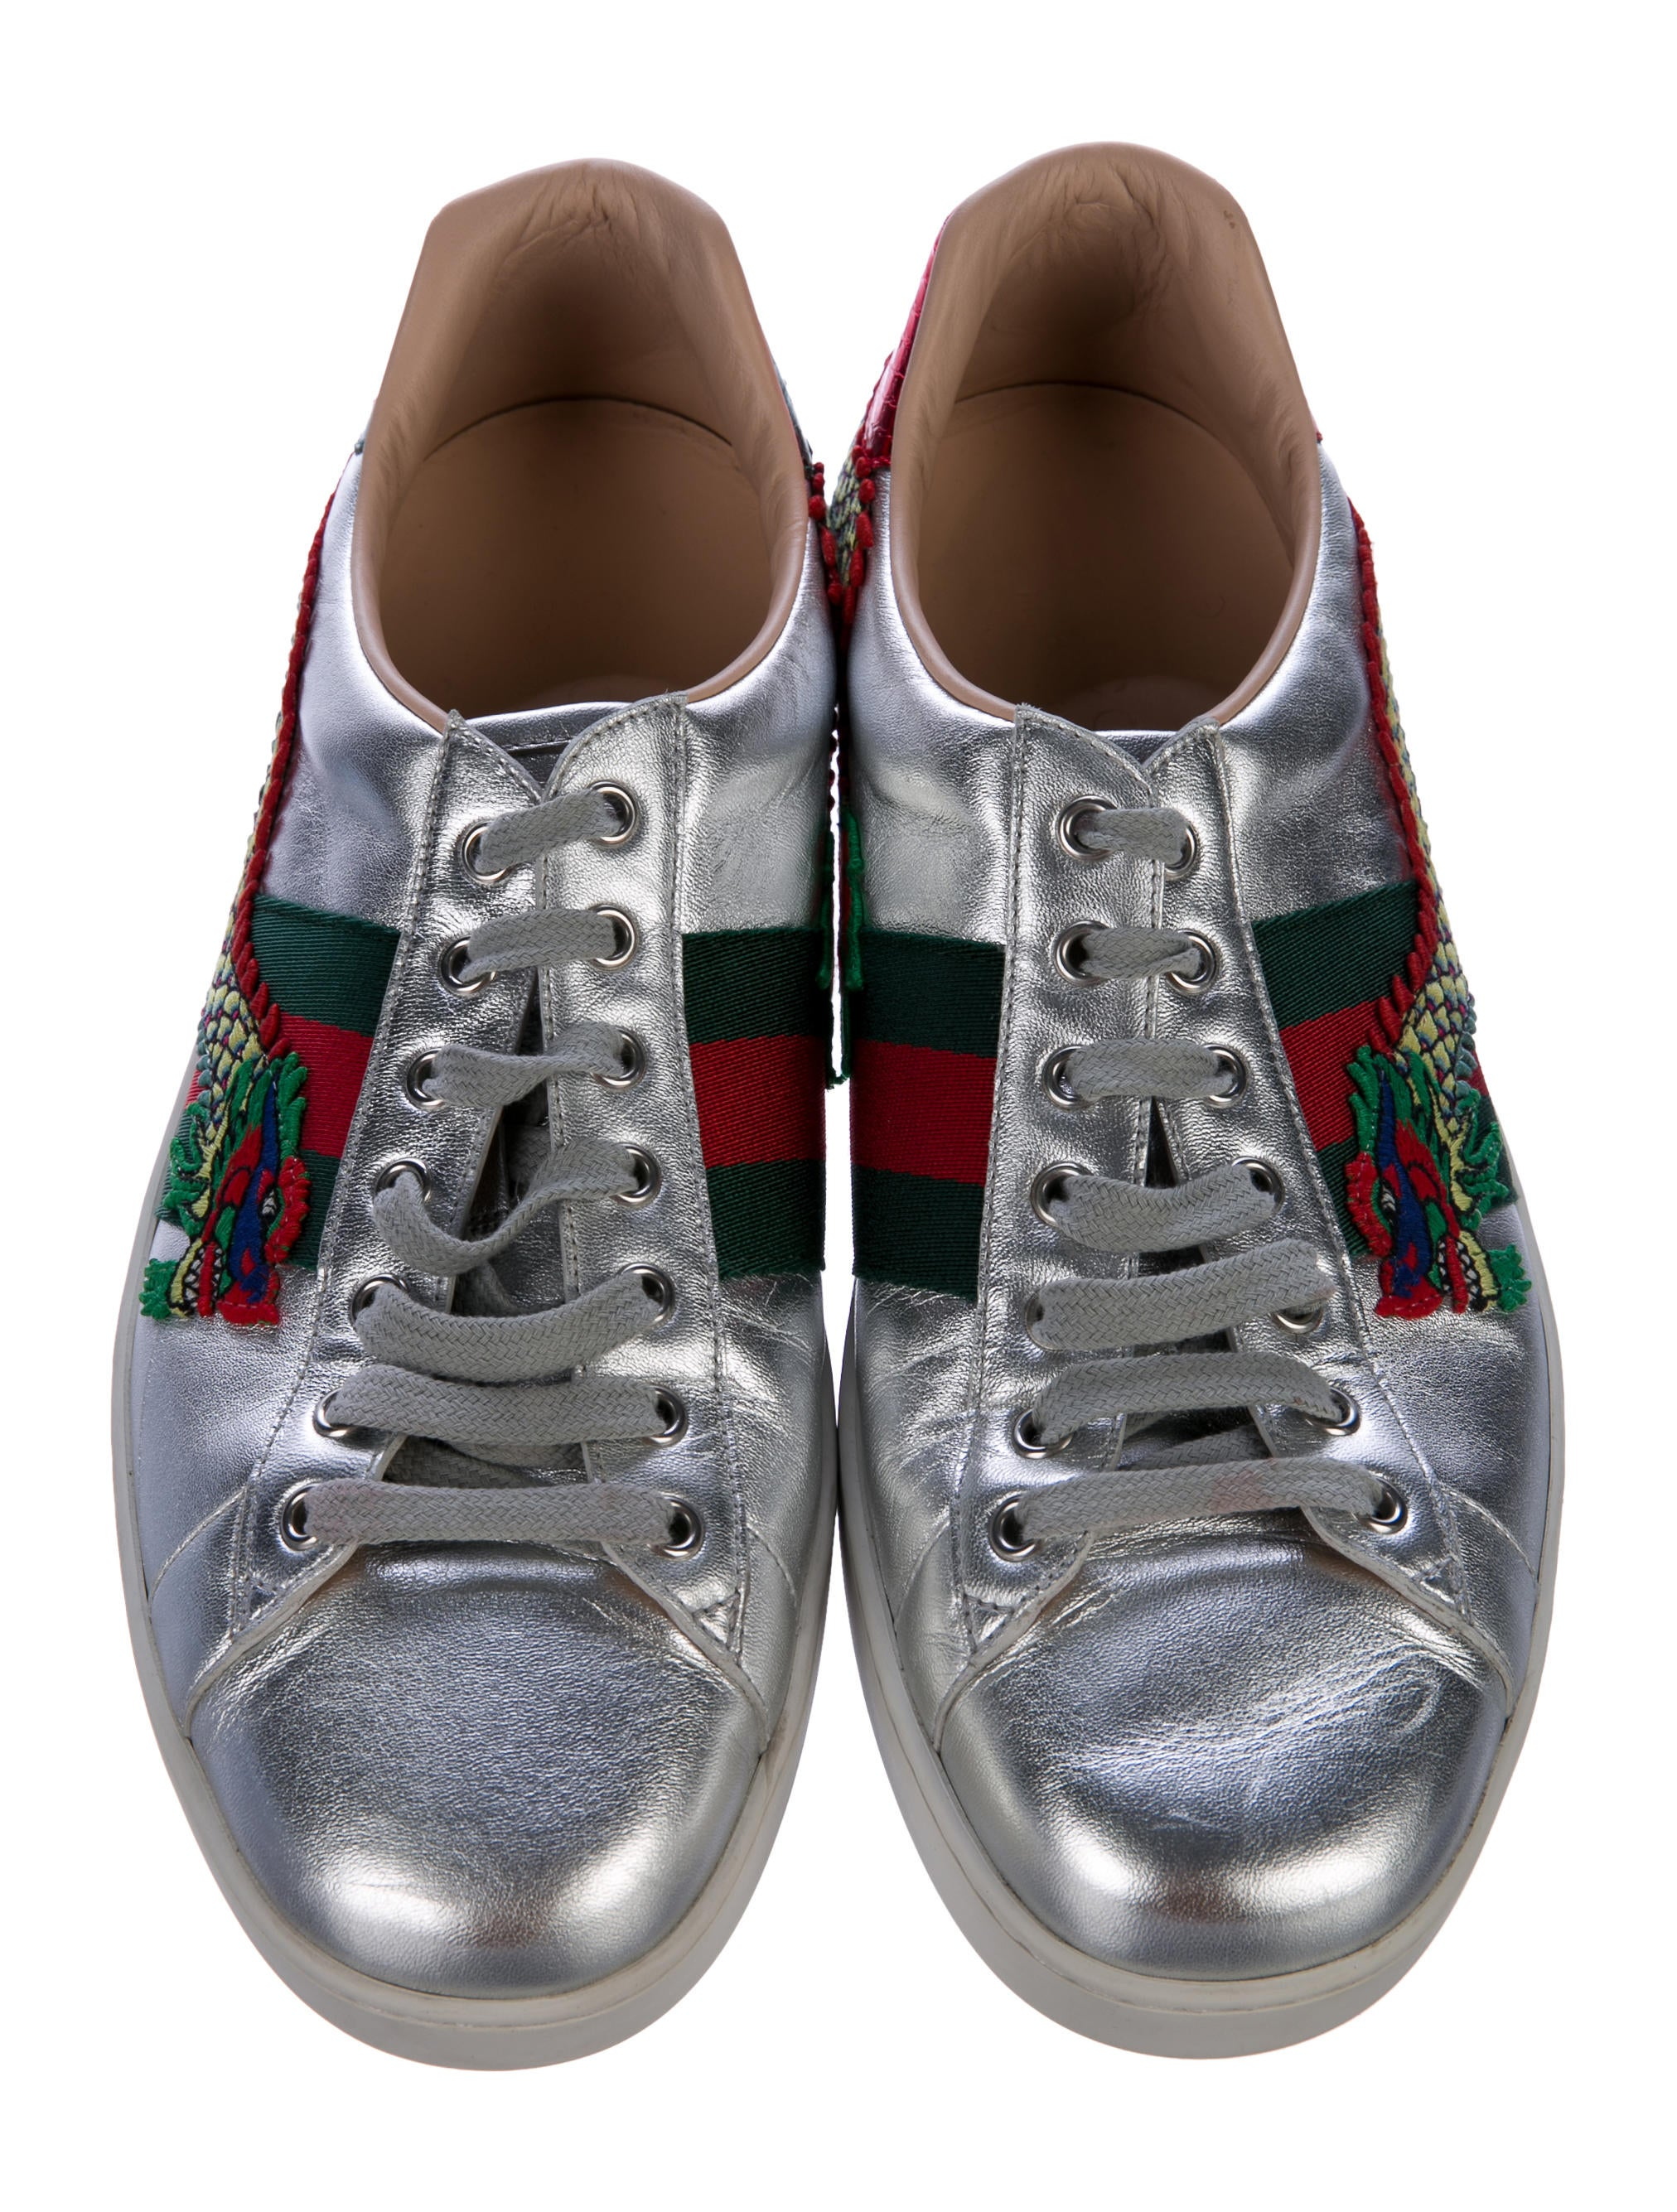 274aca4fb02 Gucci Unisex Ace Embroidered Sneaker 473765 Silver